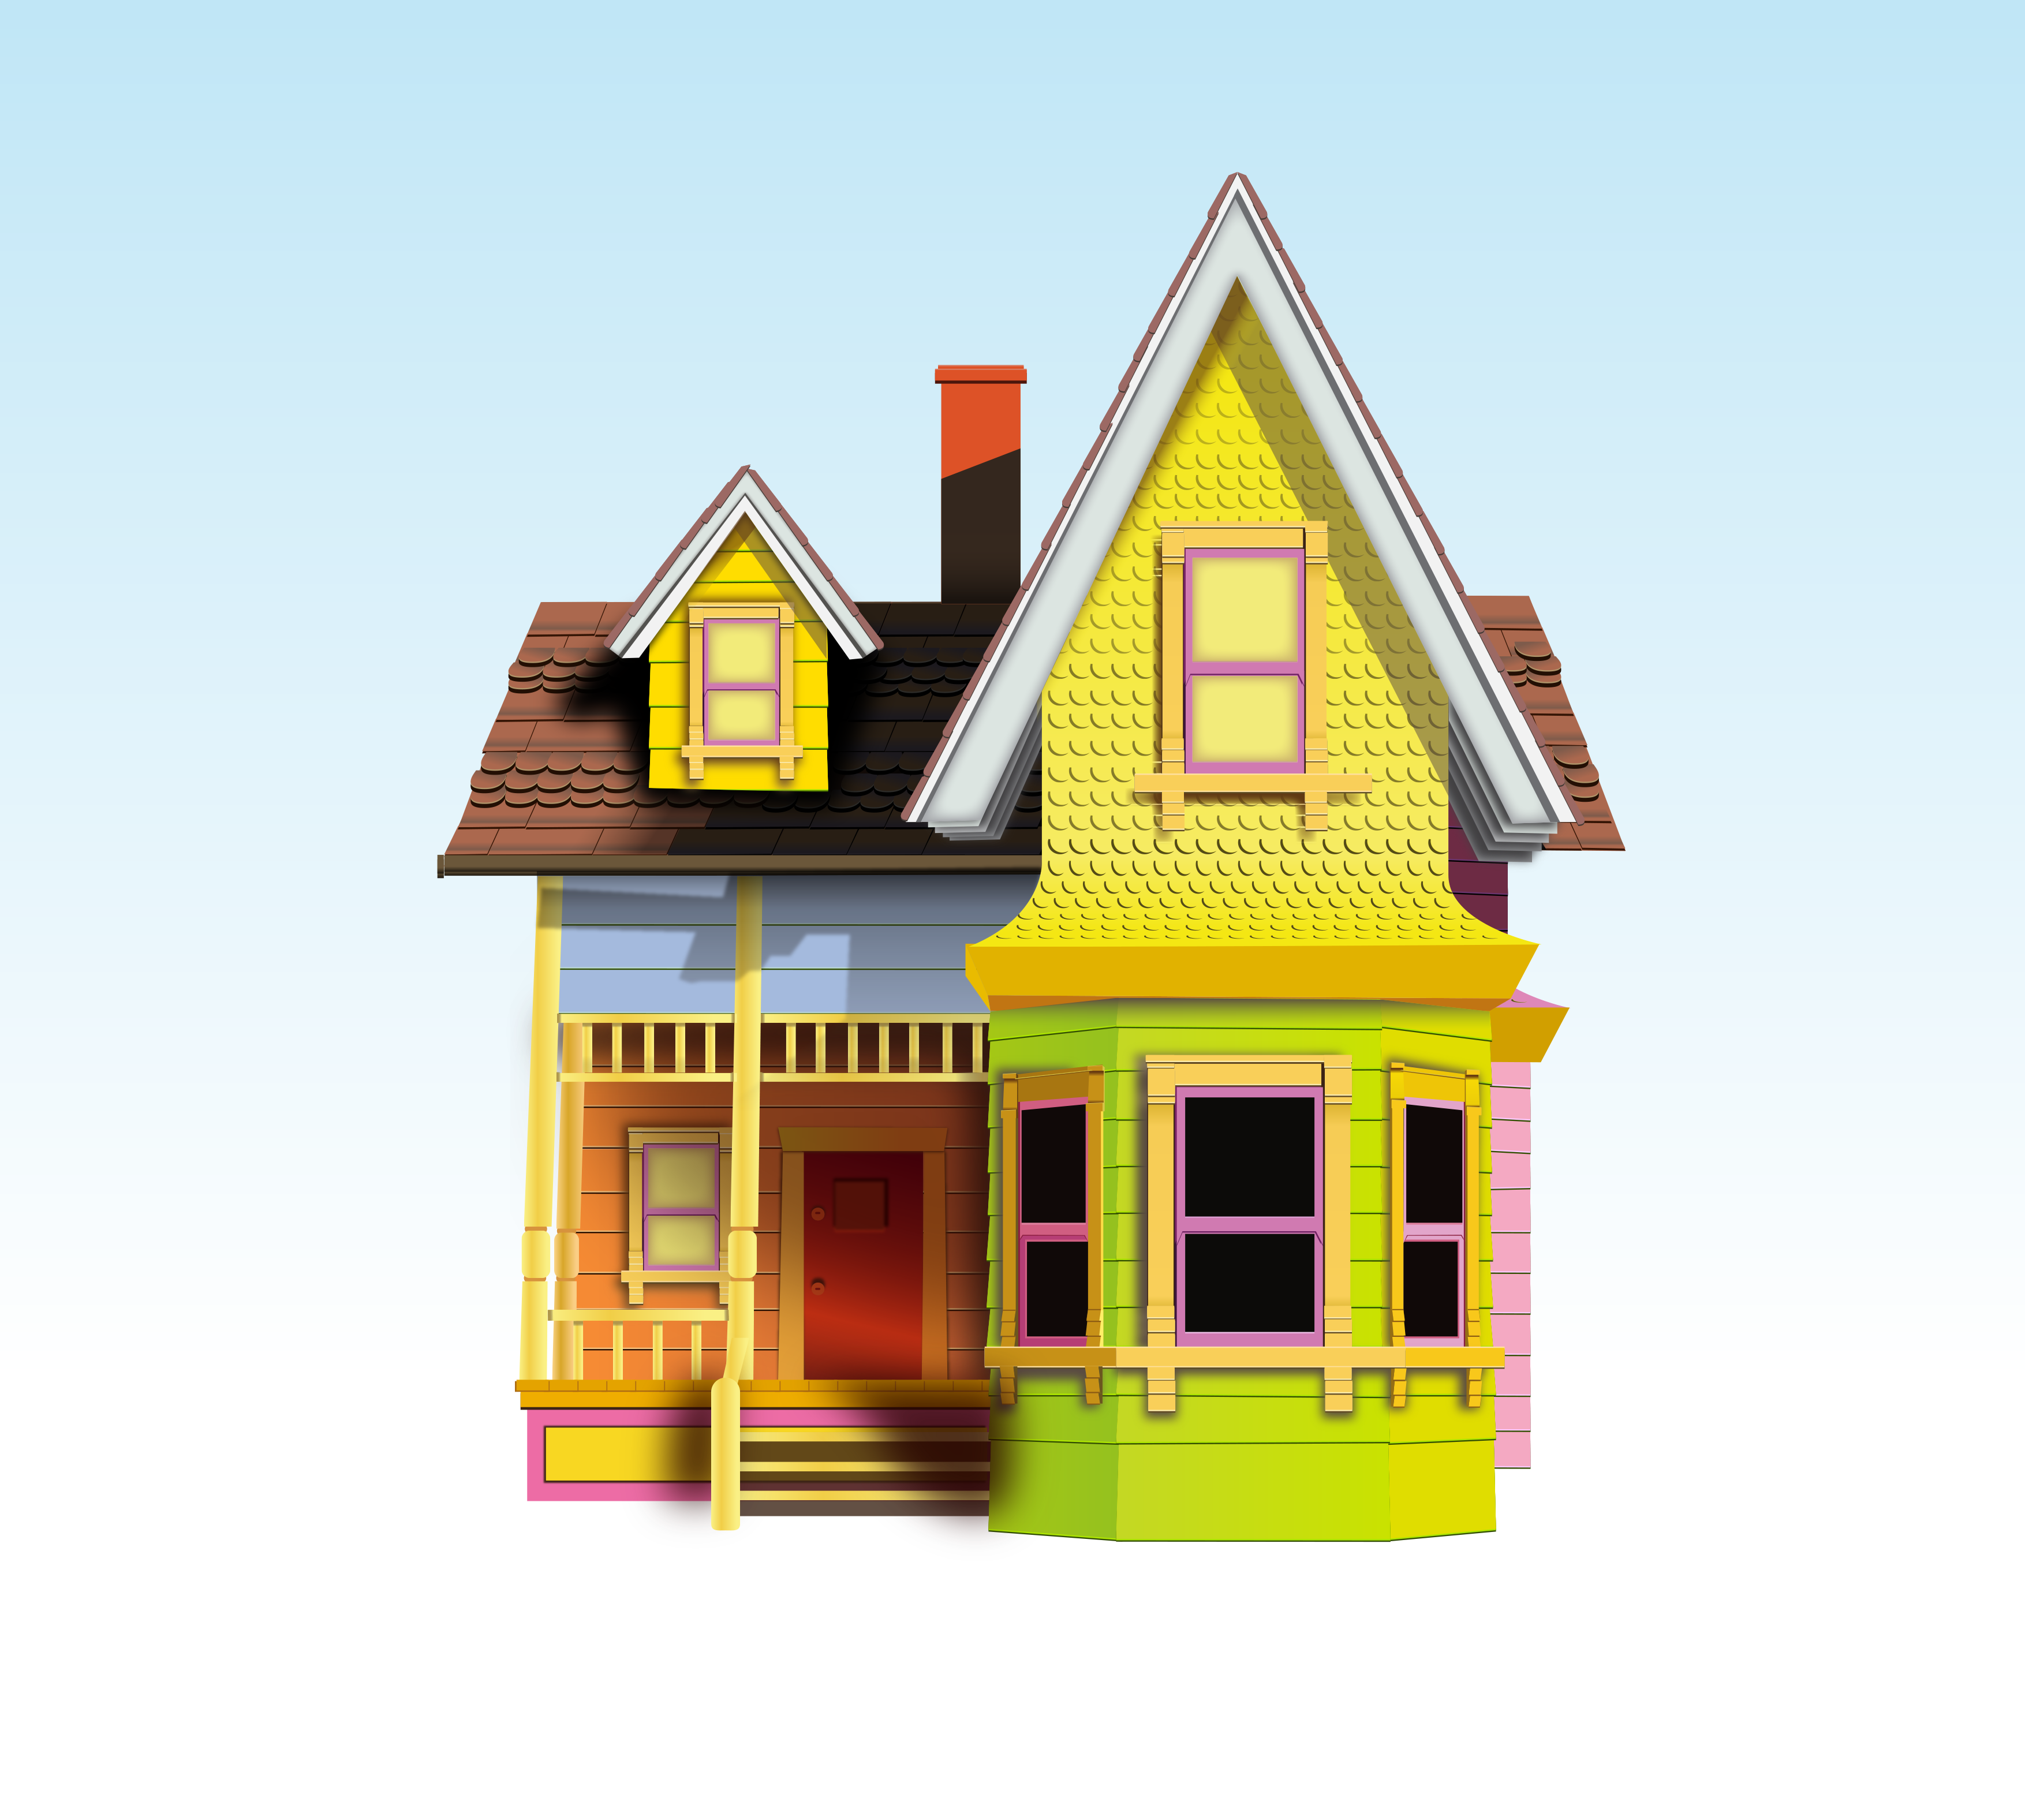 Up House Vectored By Skratakh Up House Vectored By Skratakh